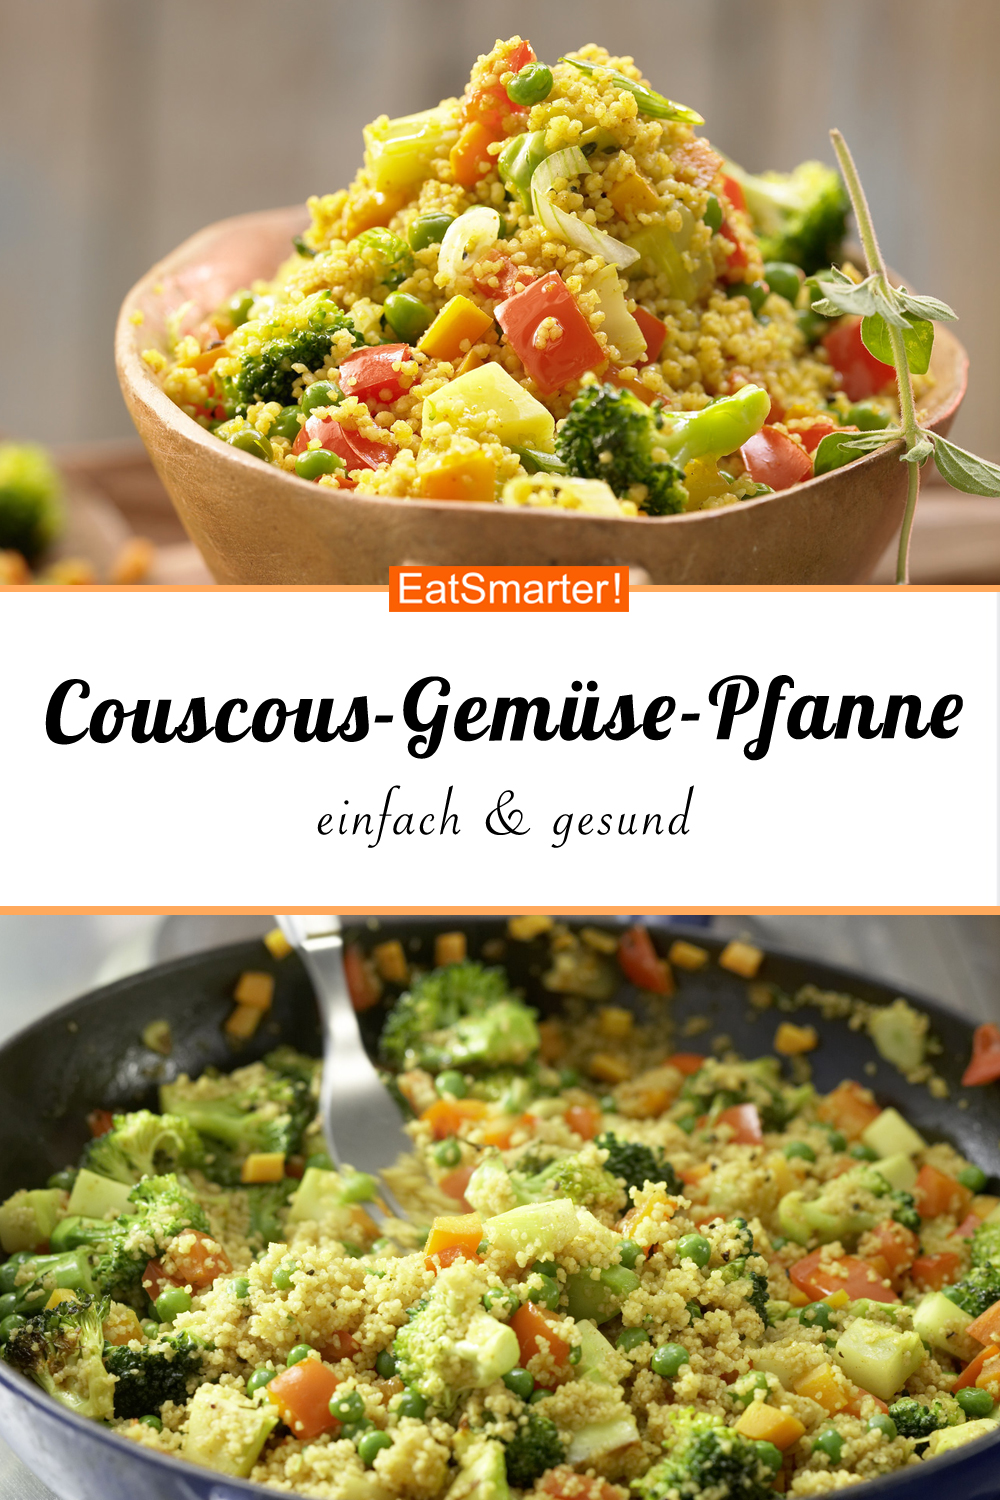 Couscous-Gemüse-Pfanne #seafooddishes